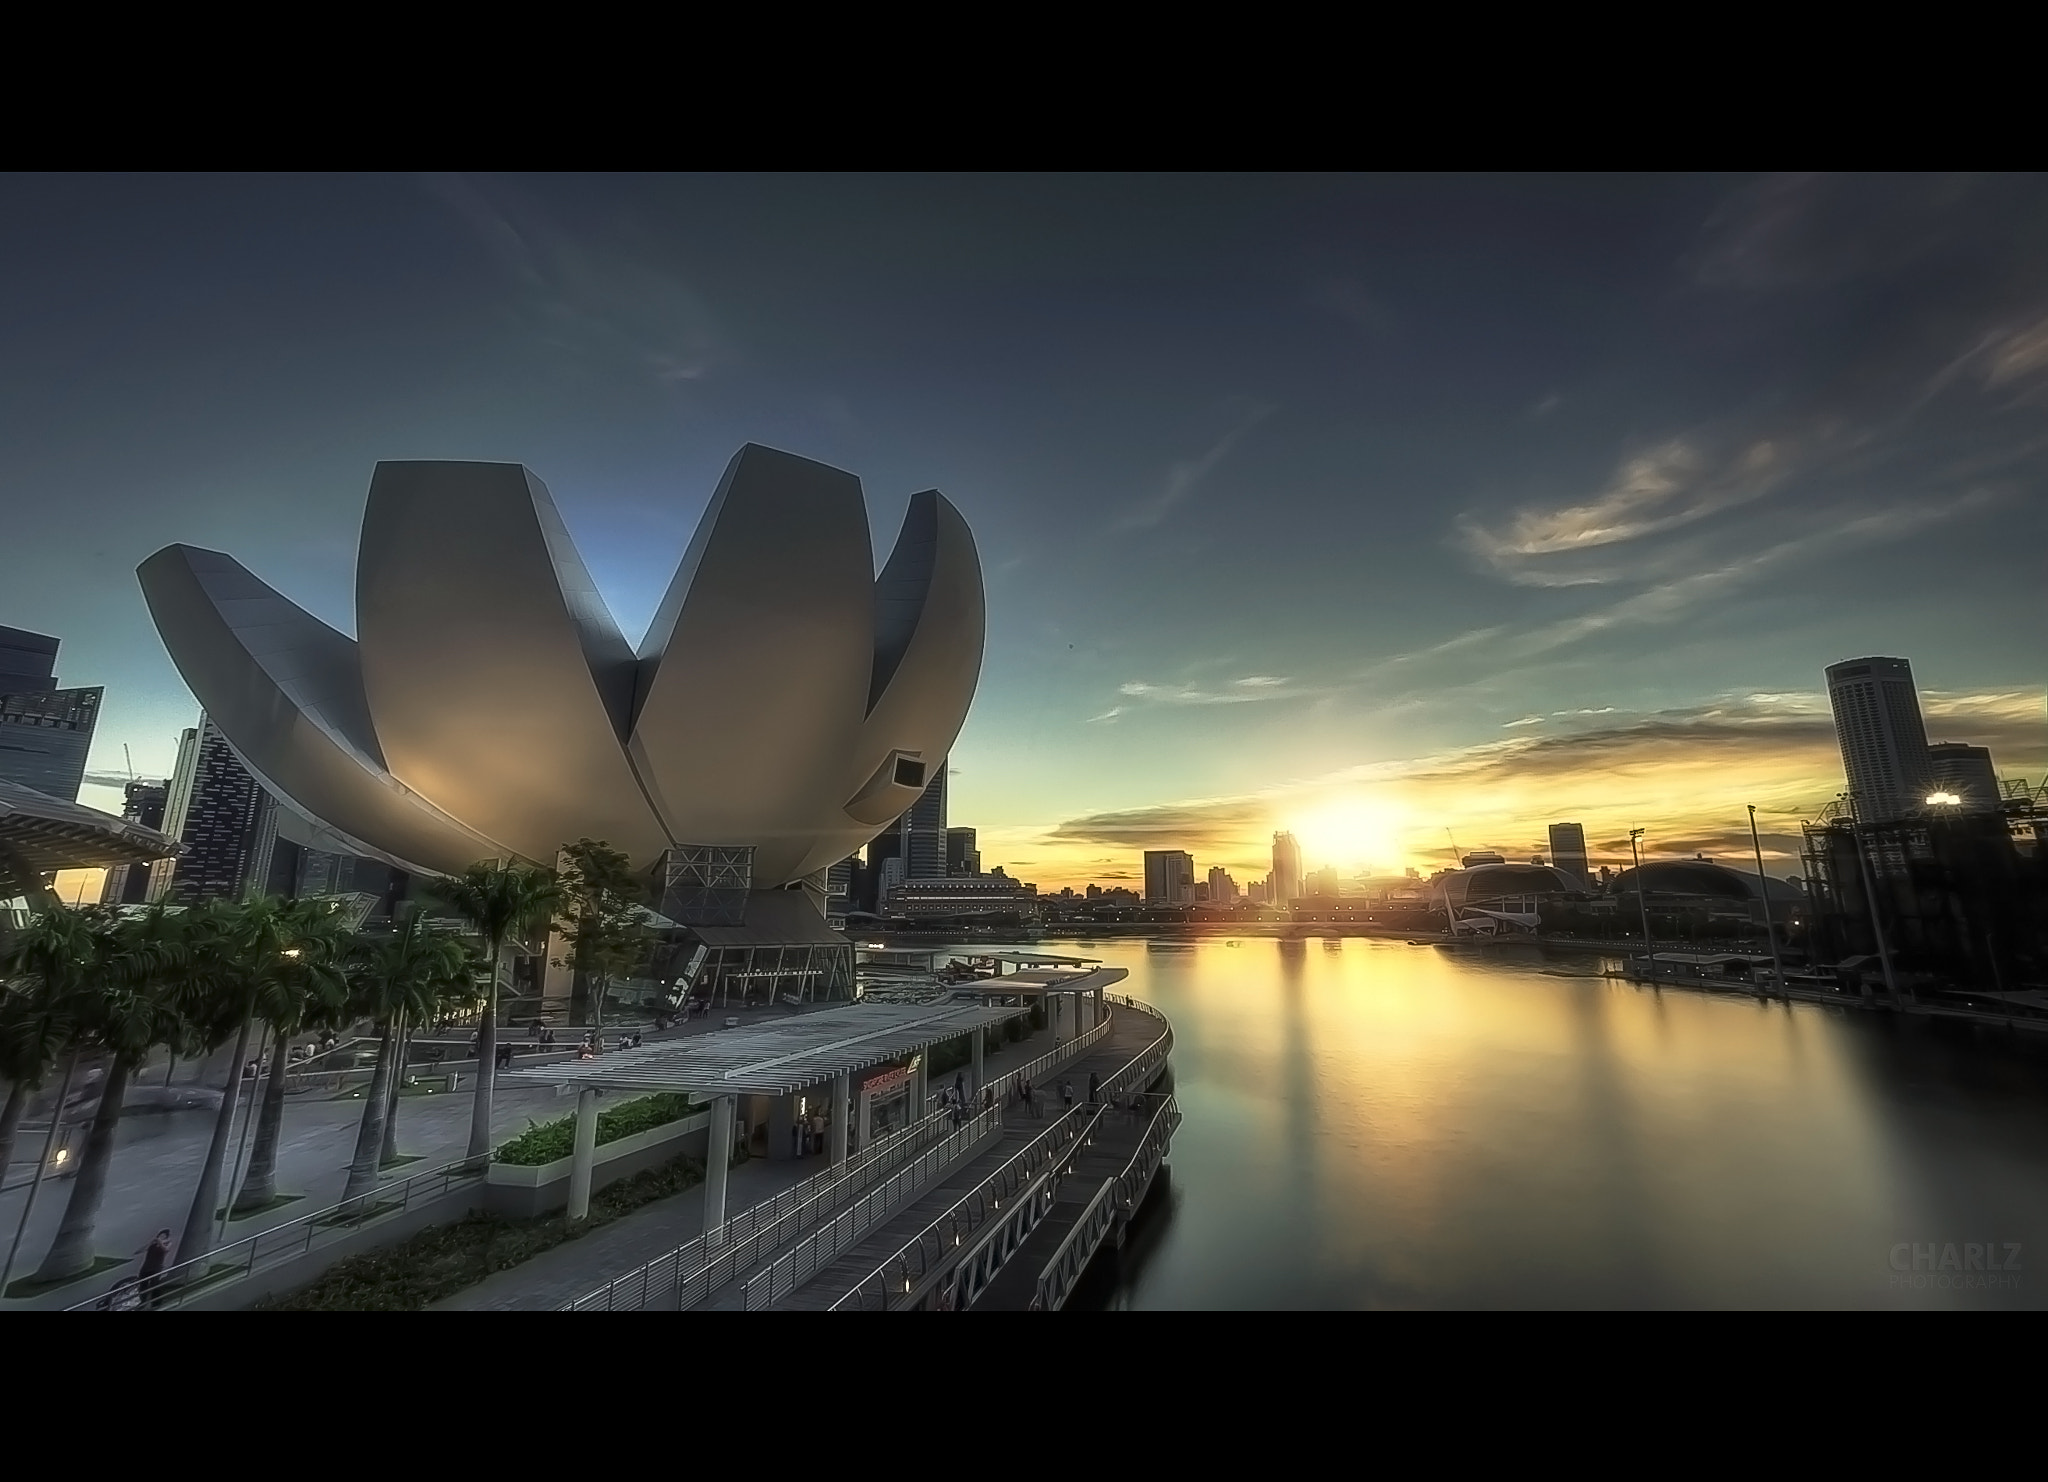 Photograph Sunset at Arts & Science Museum, Singapore. by Charlz Photography on 500px